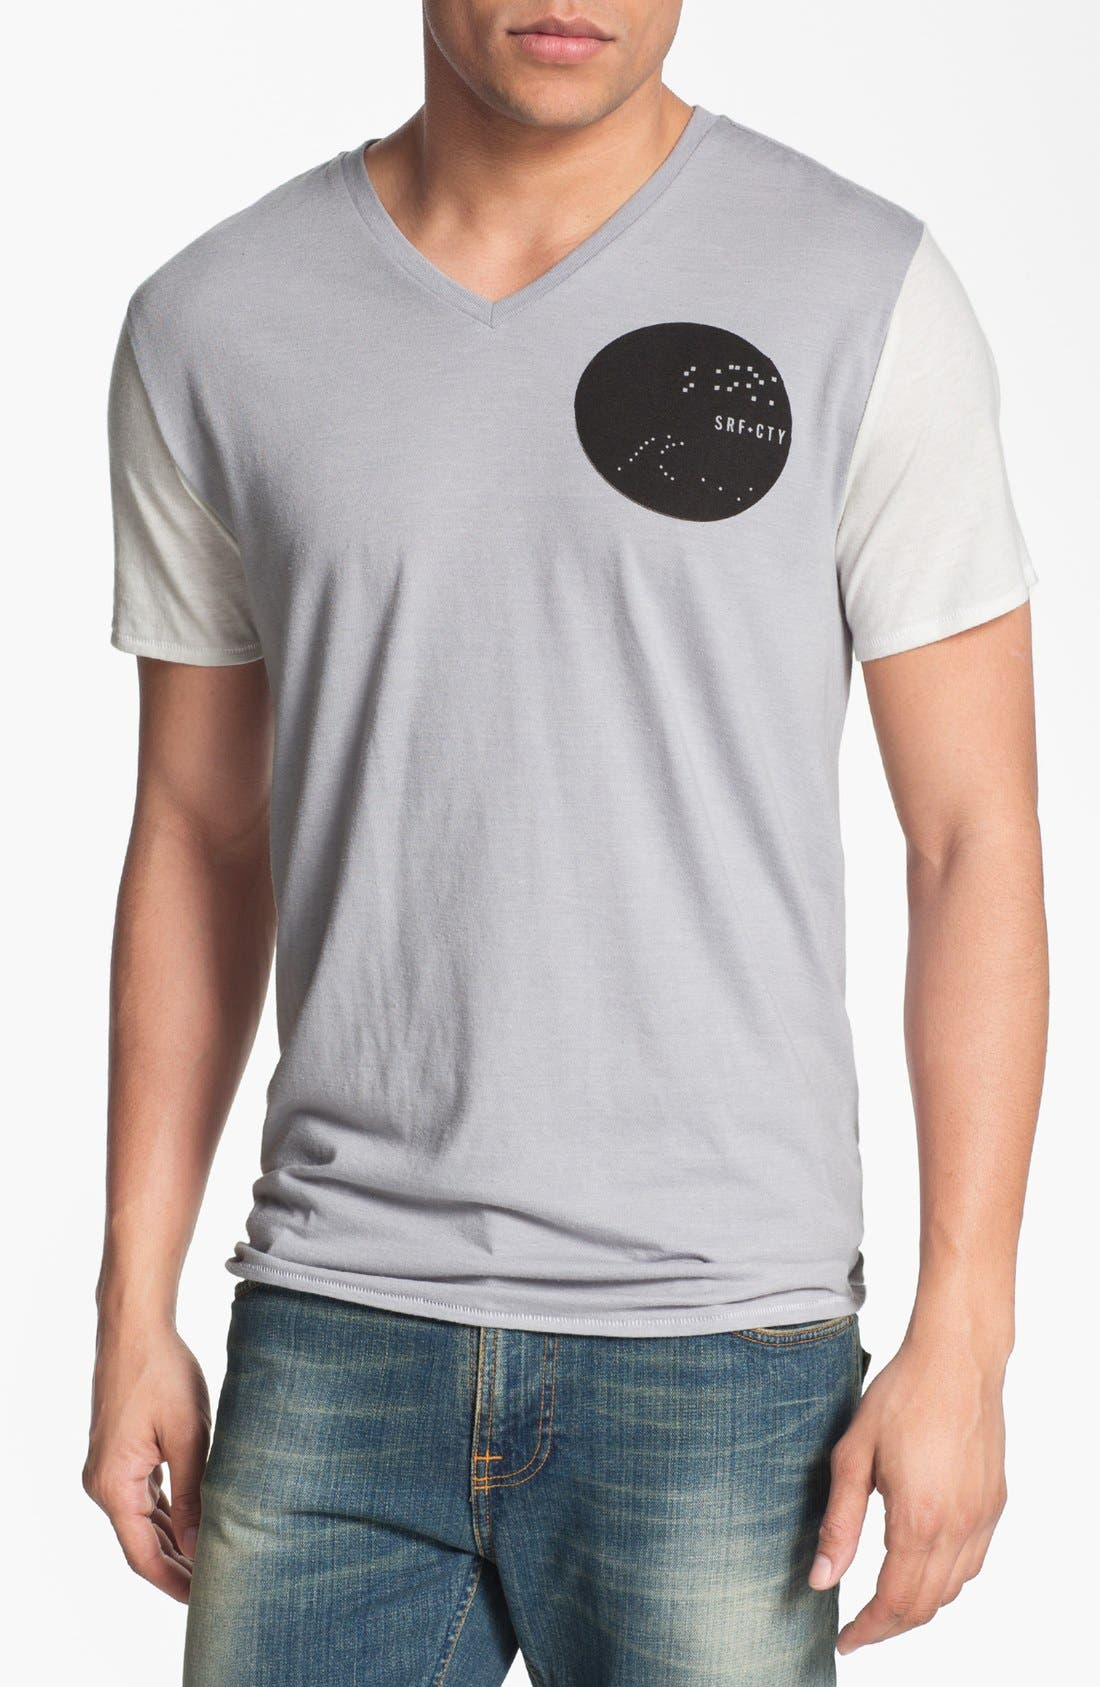 Main Image - Loomstate 'Surf City' Graphic V-Neck T-Shirt